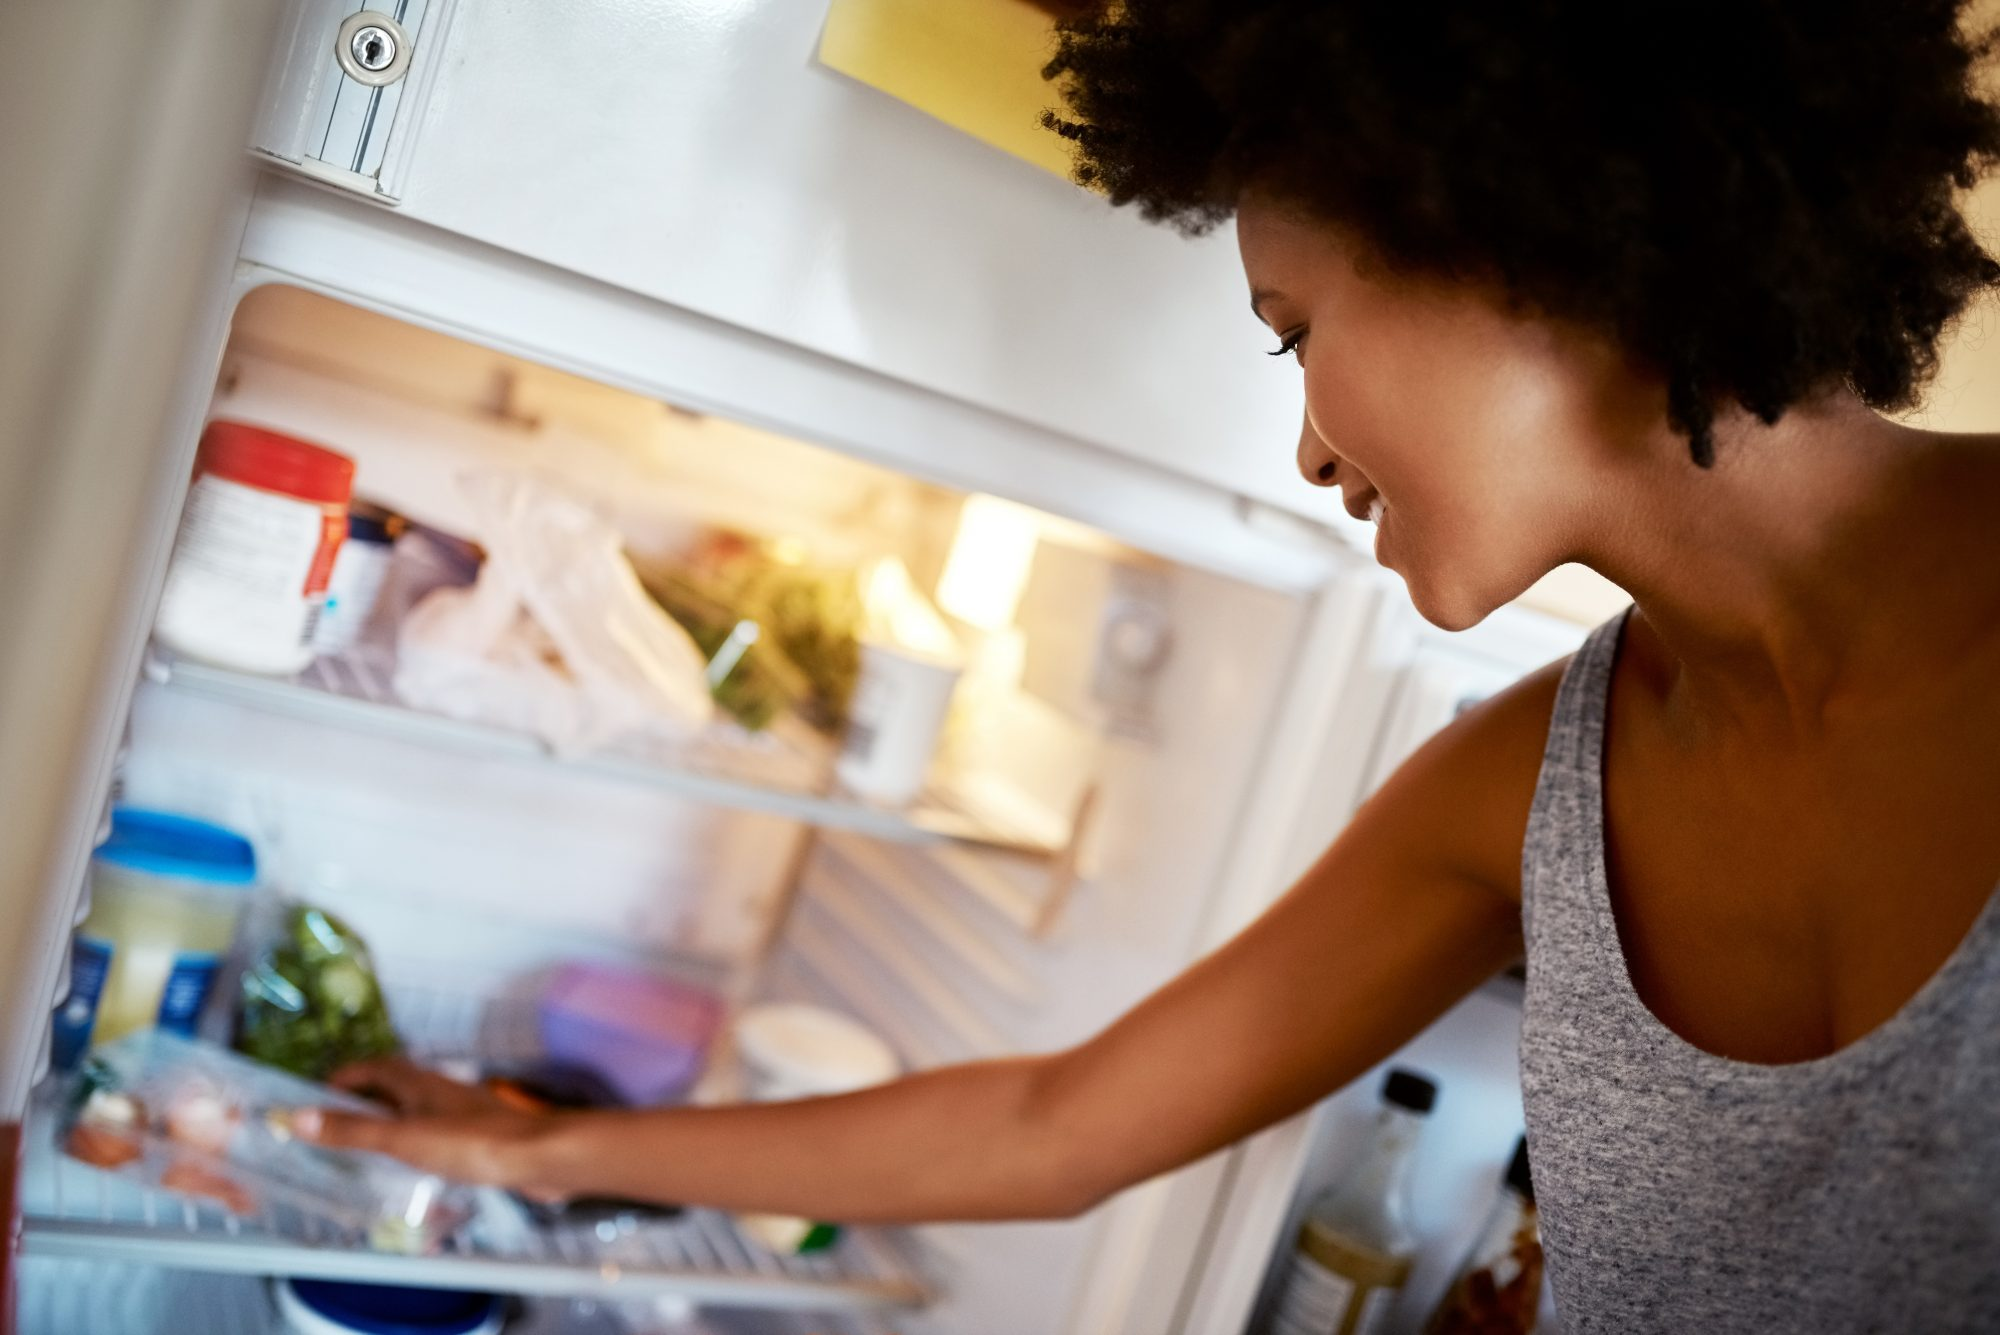 12 Rules for Cleaning Out Your Refrigerator and Freezer